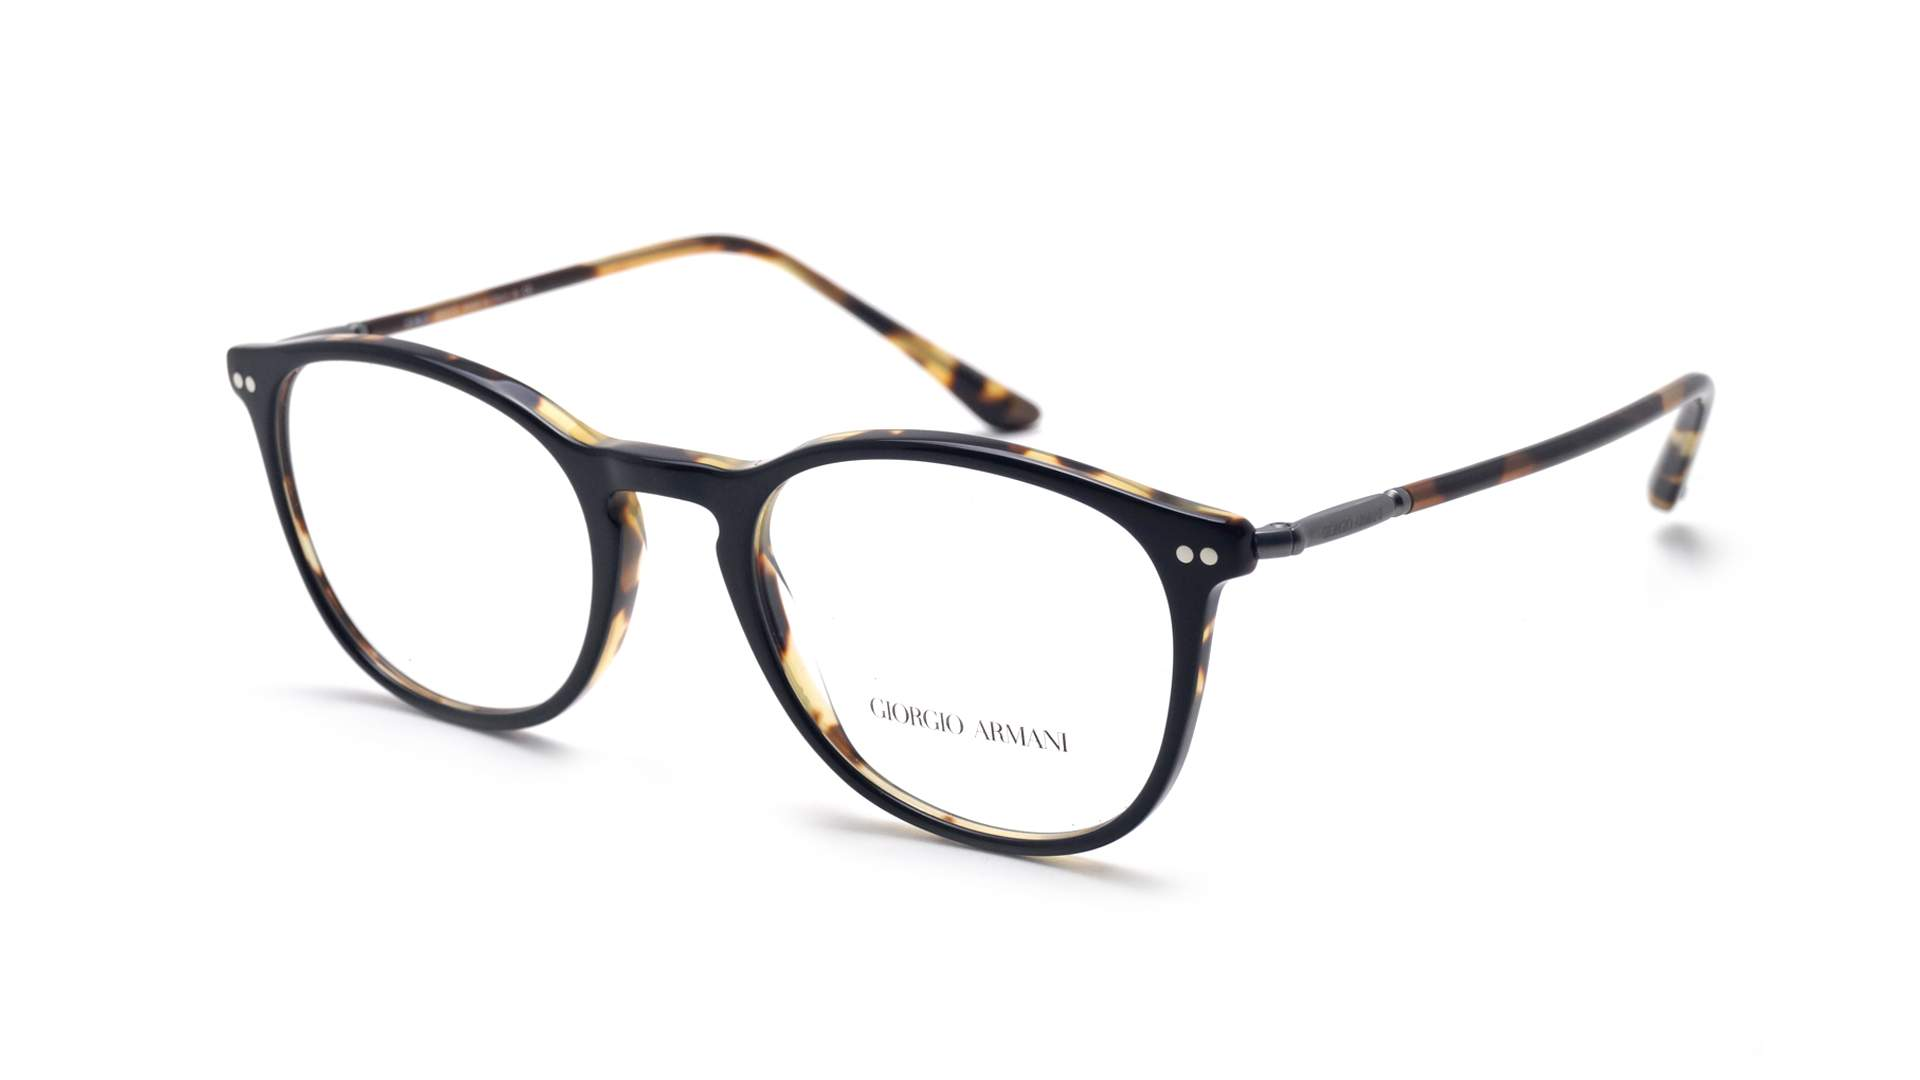 507ca656ba73 Eyeglasses Giorgio Armani Frames Of Life Black AR7125 5622 50-20 Medium